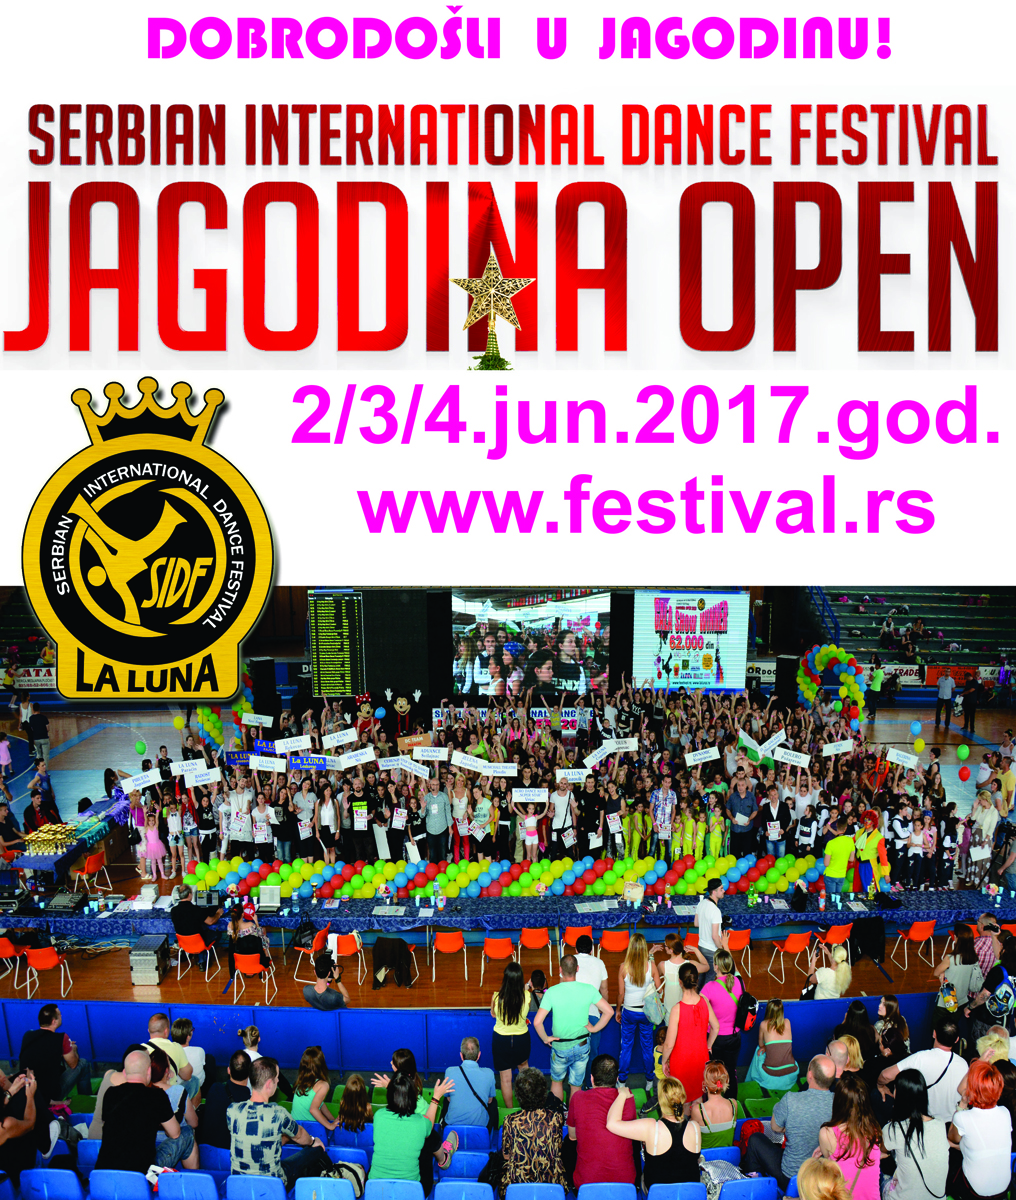 SERBIAN INTERNATIONAL DANCE FESTIVAL-JAGODINA OPEN, 2-4.JUN.2017.god.